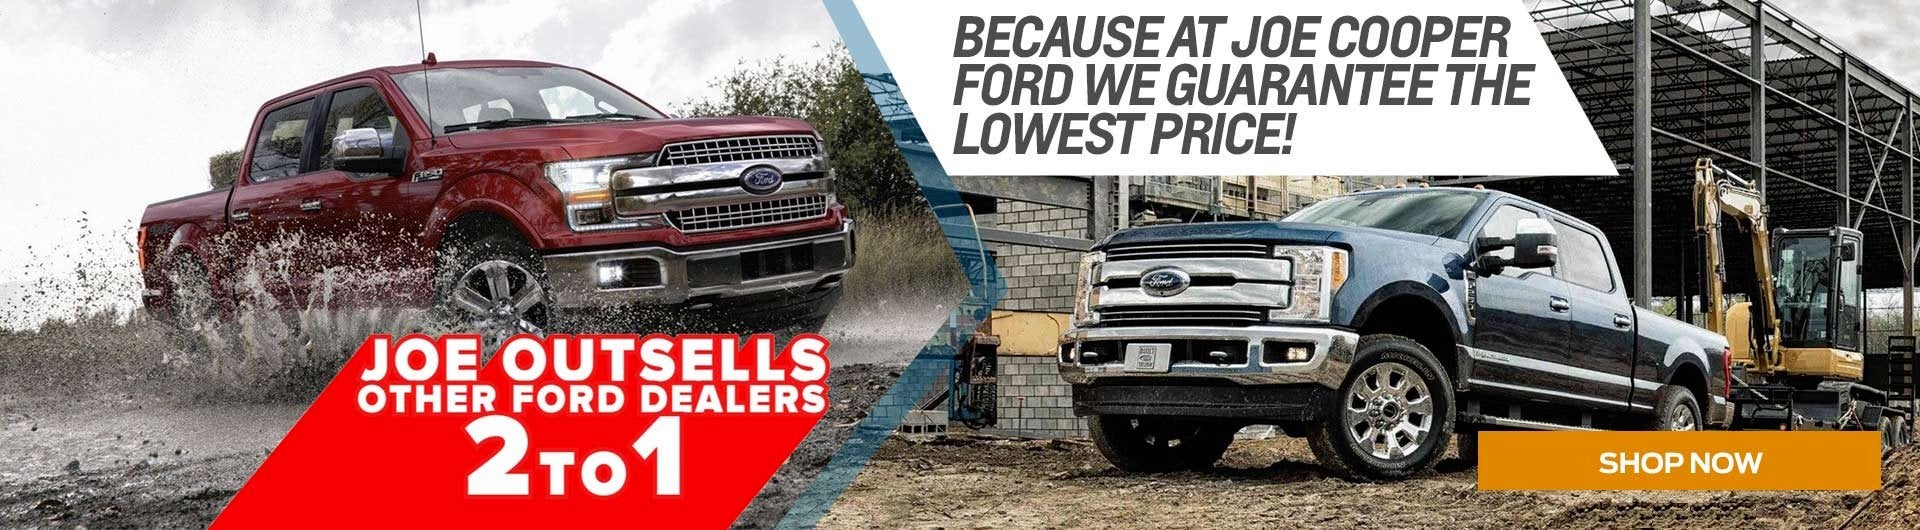 Shawnee Ford Outsells 2 to 1